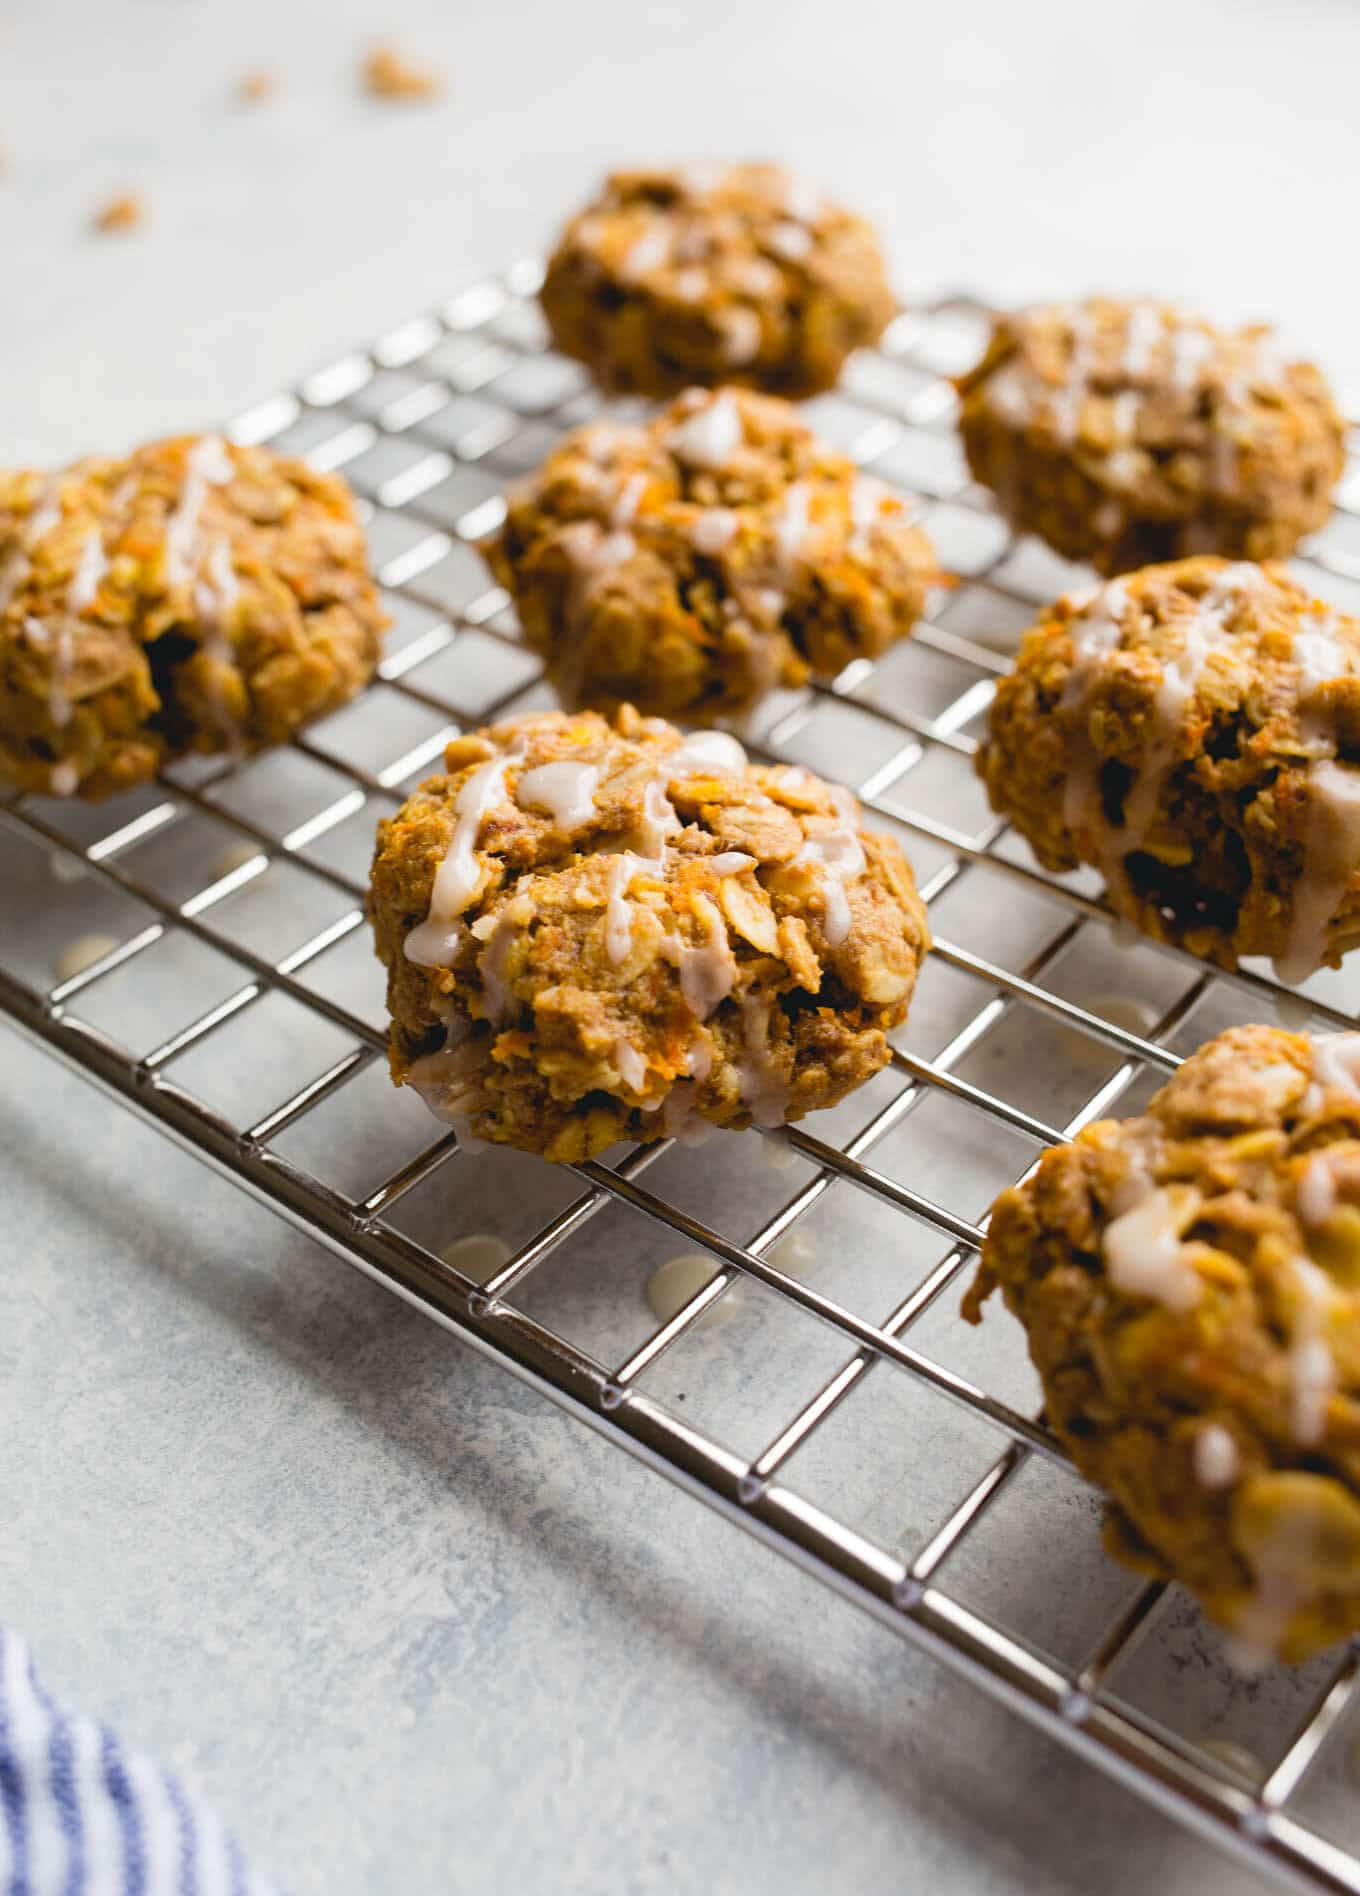 Gluten-Free Carrot Oatmeal Cookies are full of wholesome oats, carrots, flaxseeds, and walnuts for a deliciously healthy treat. Vegan, refined sugar-free.